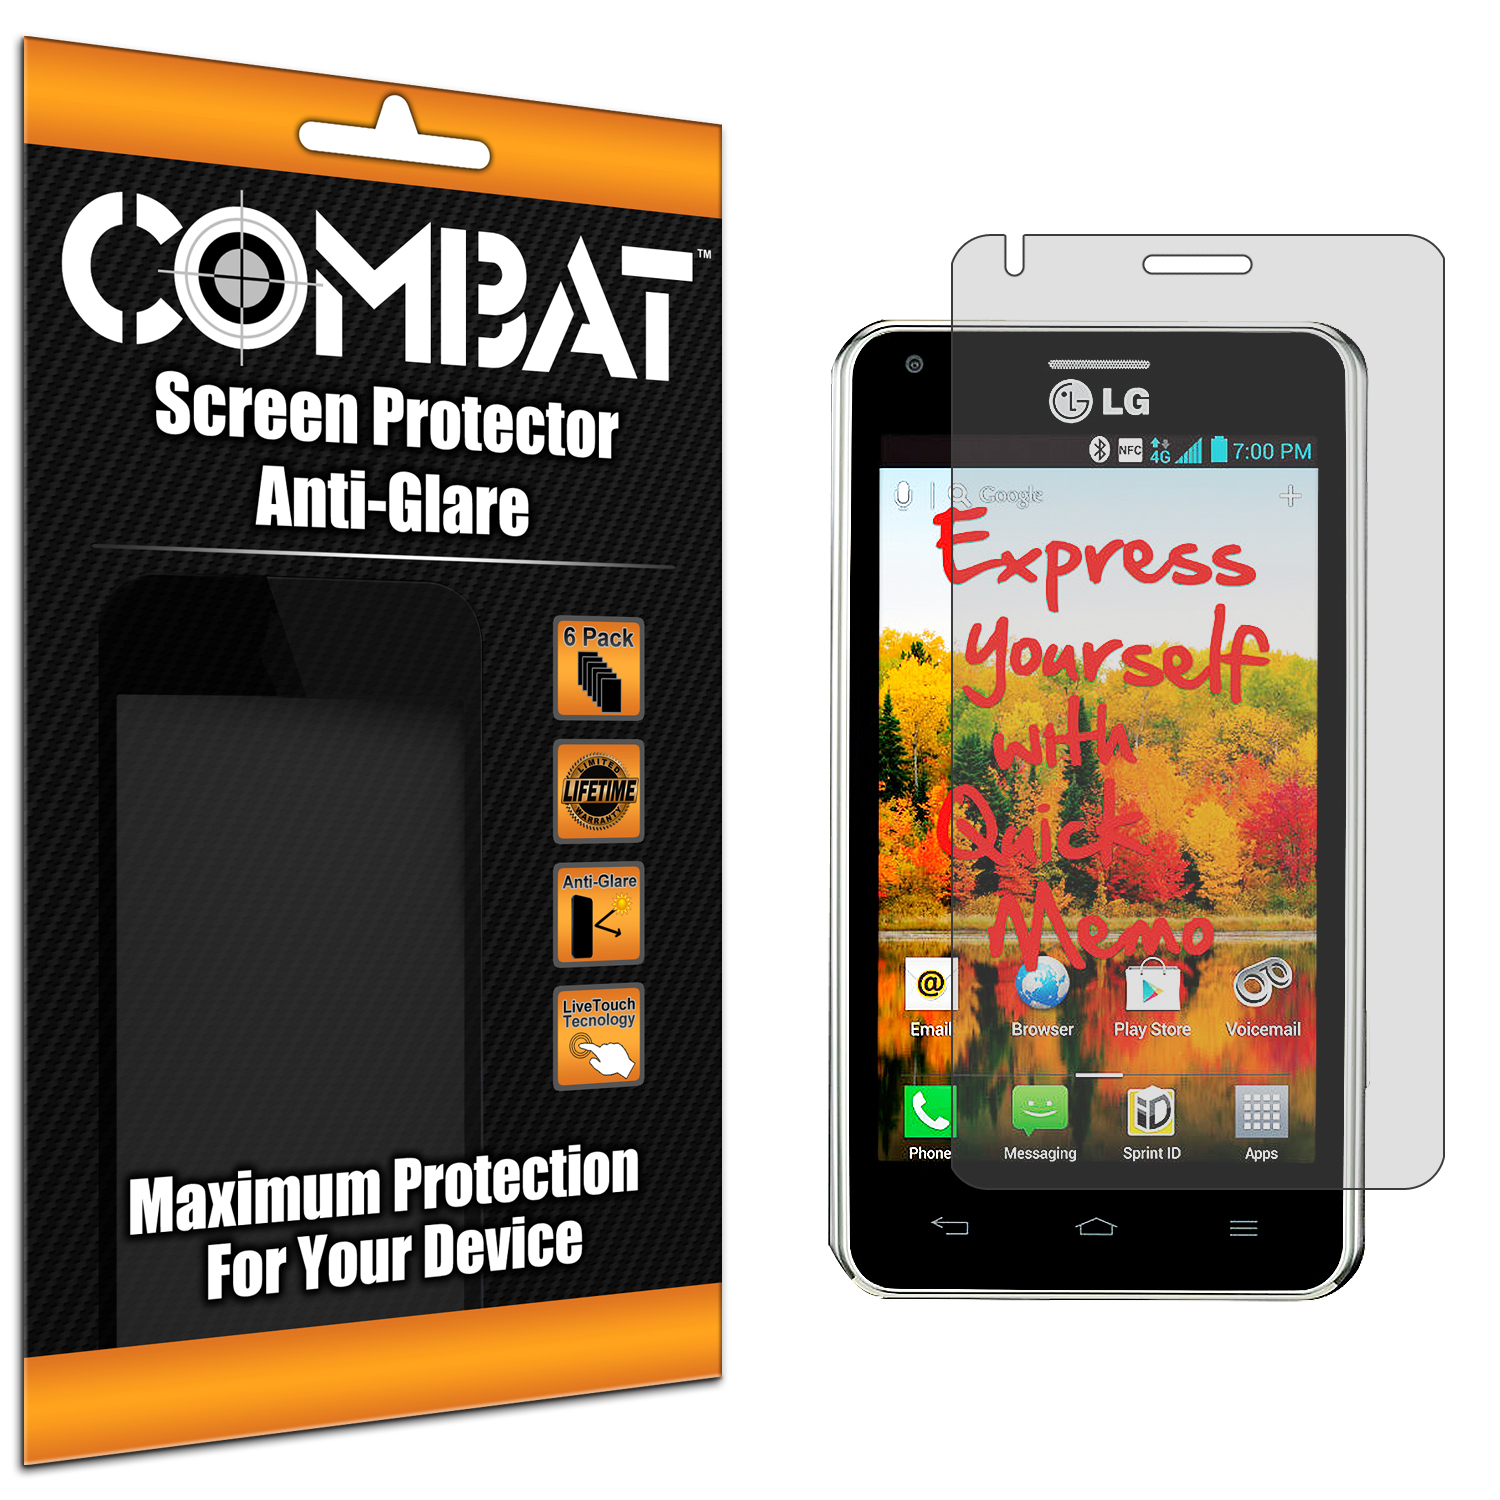 LG Mach LS860 Combat 6 Pack Anti-Glare Matte Screen Protector